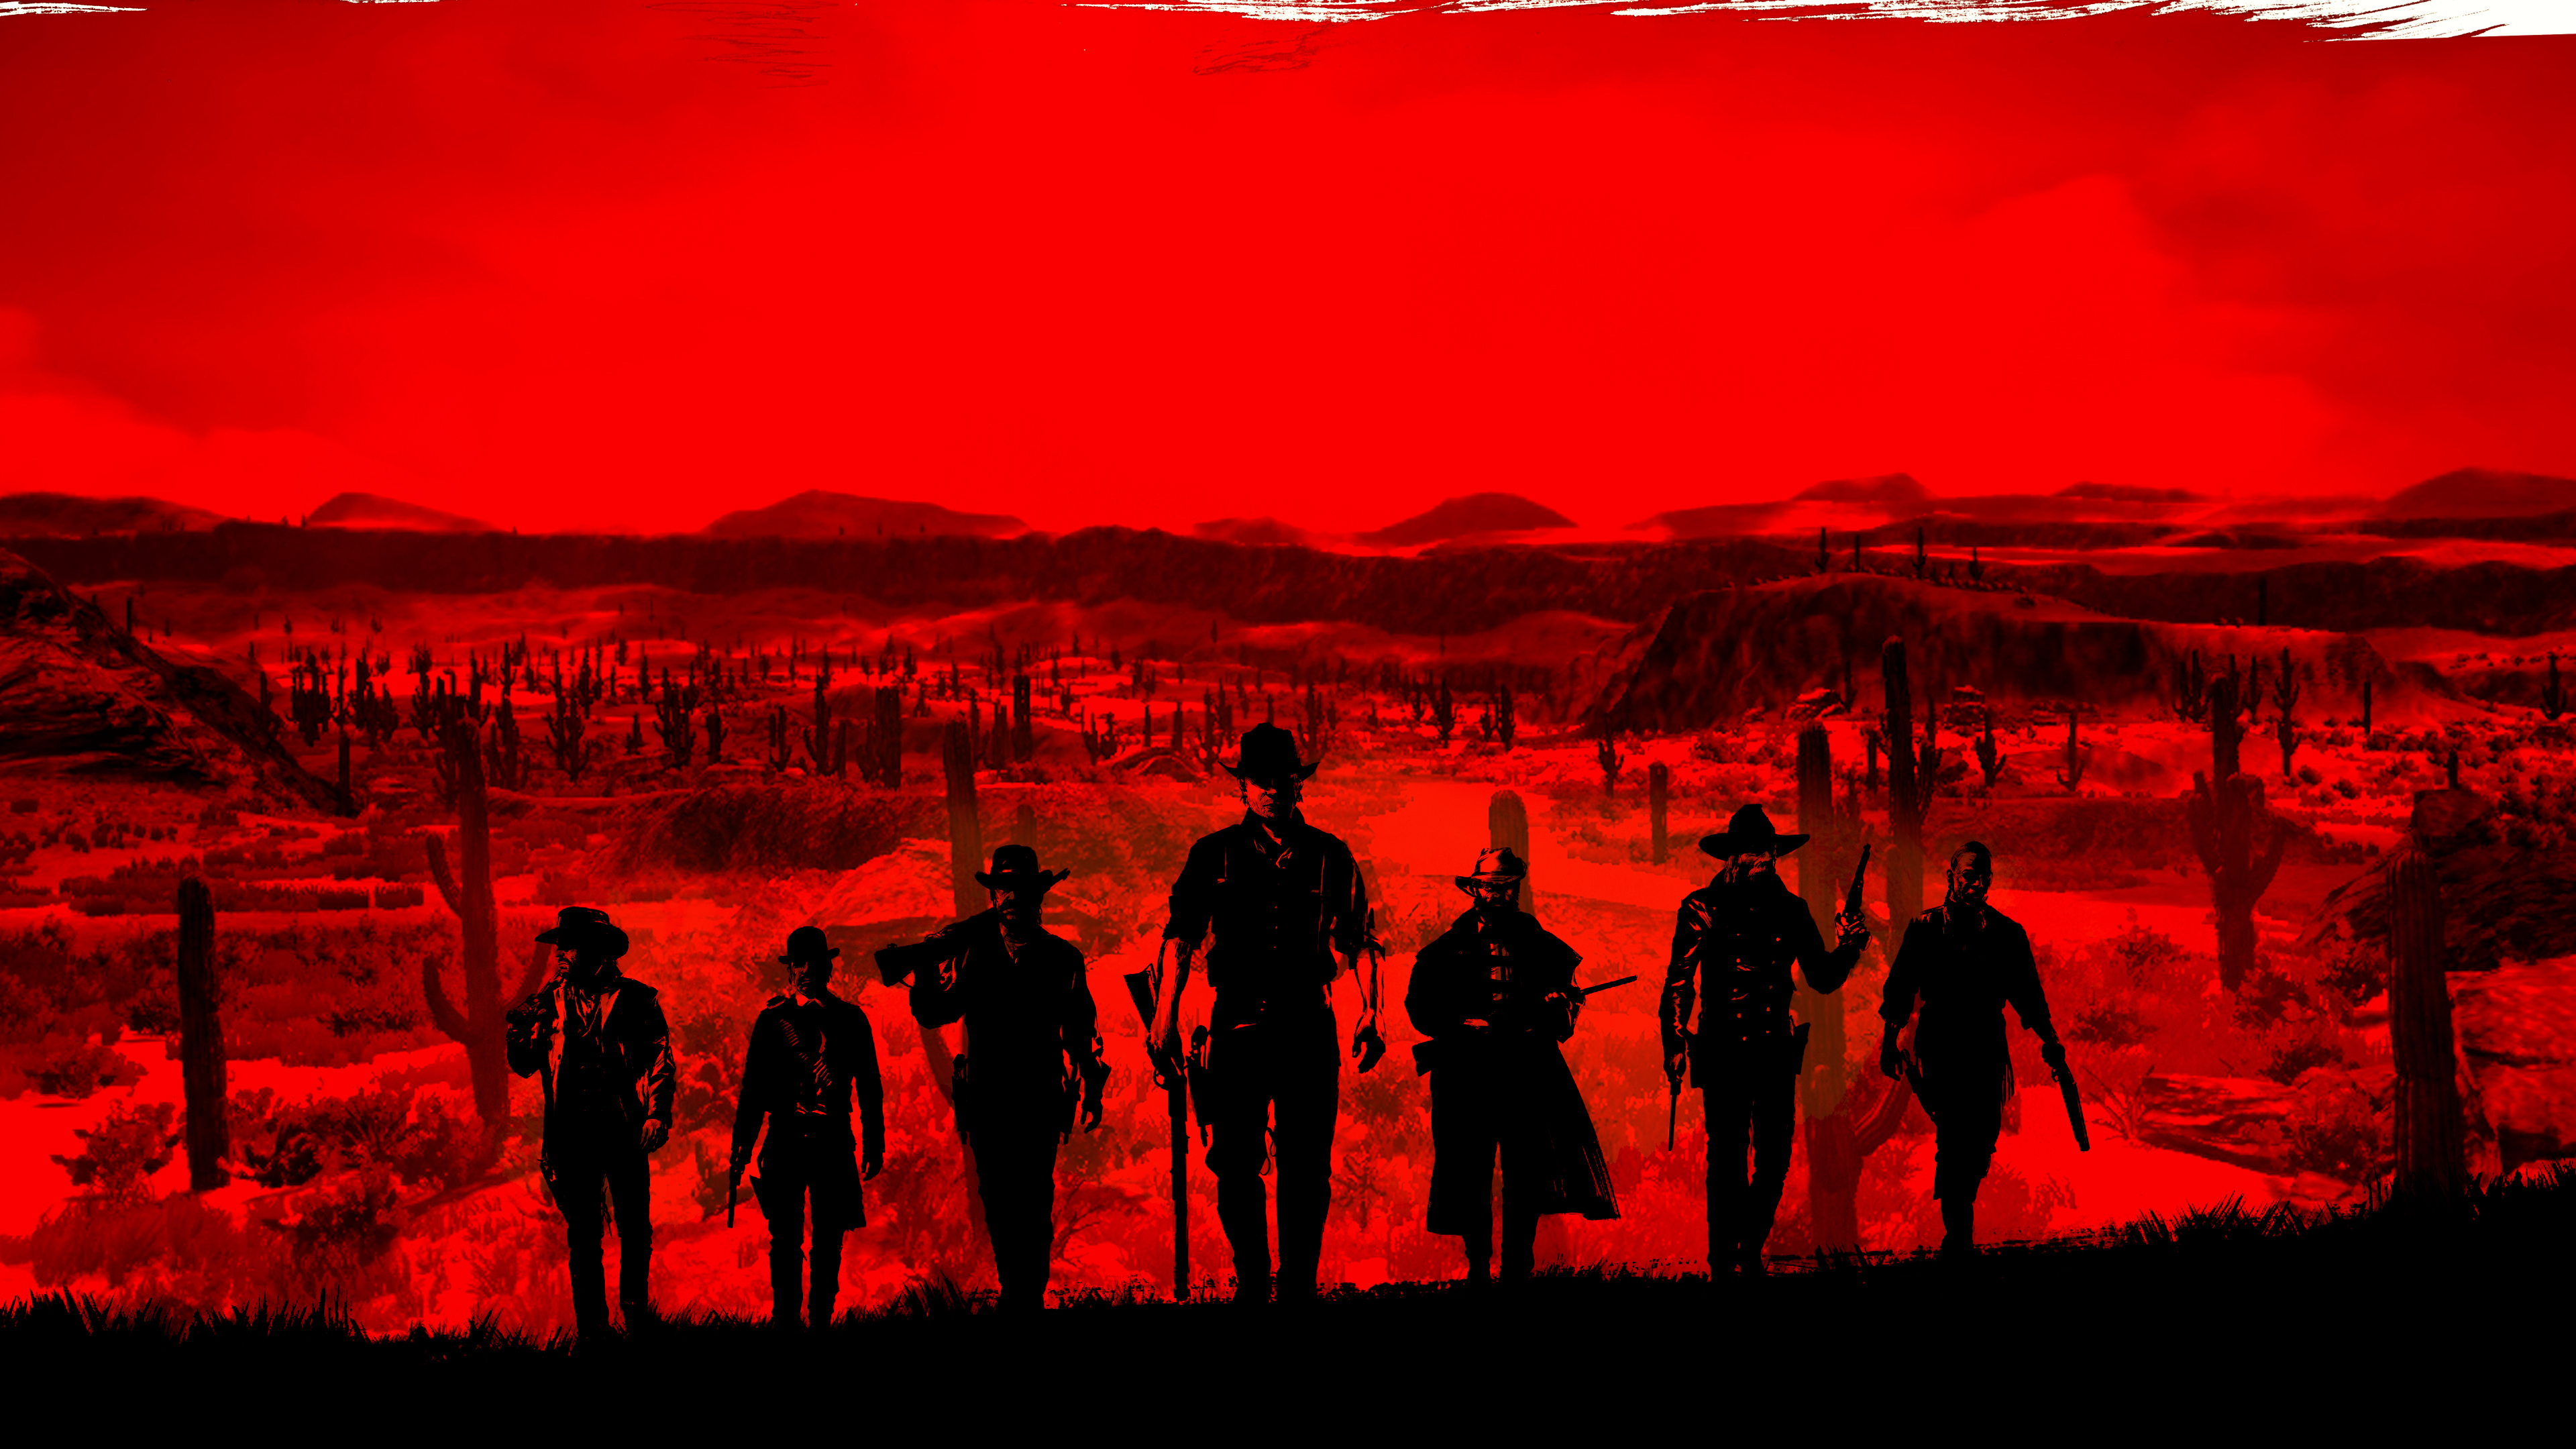 Red Dead Redemption Wallpaper Hd Free Red Dead Redemption Chromebook Wallpaper Ready For